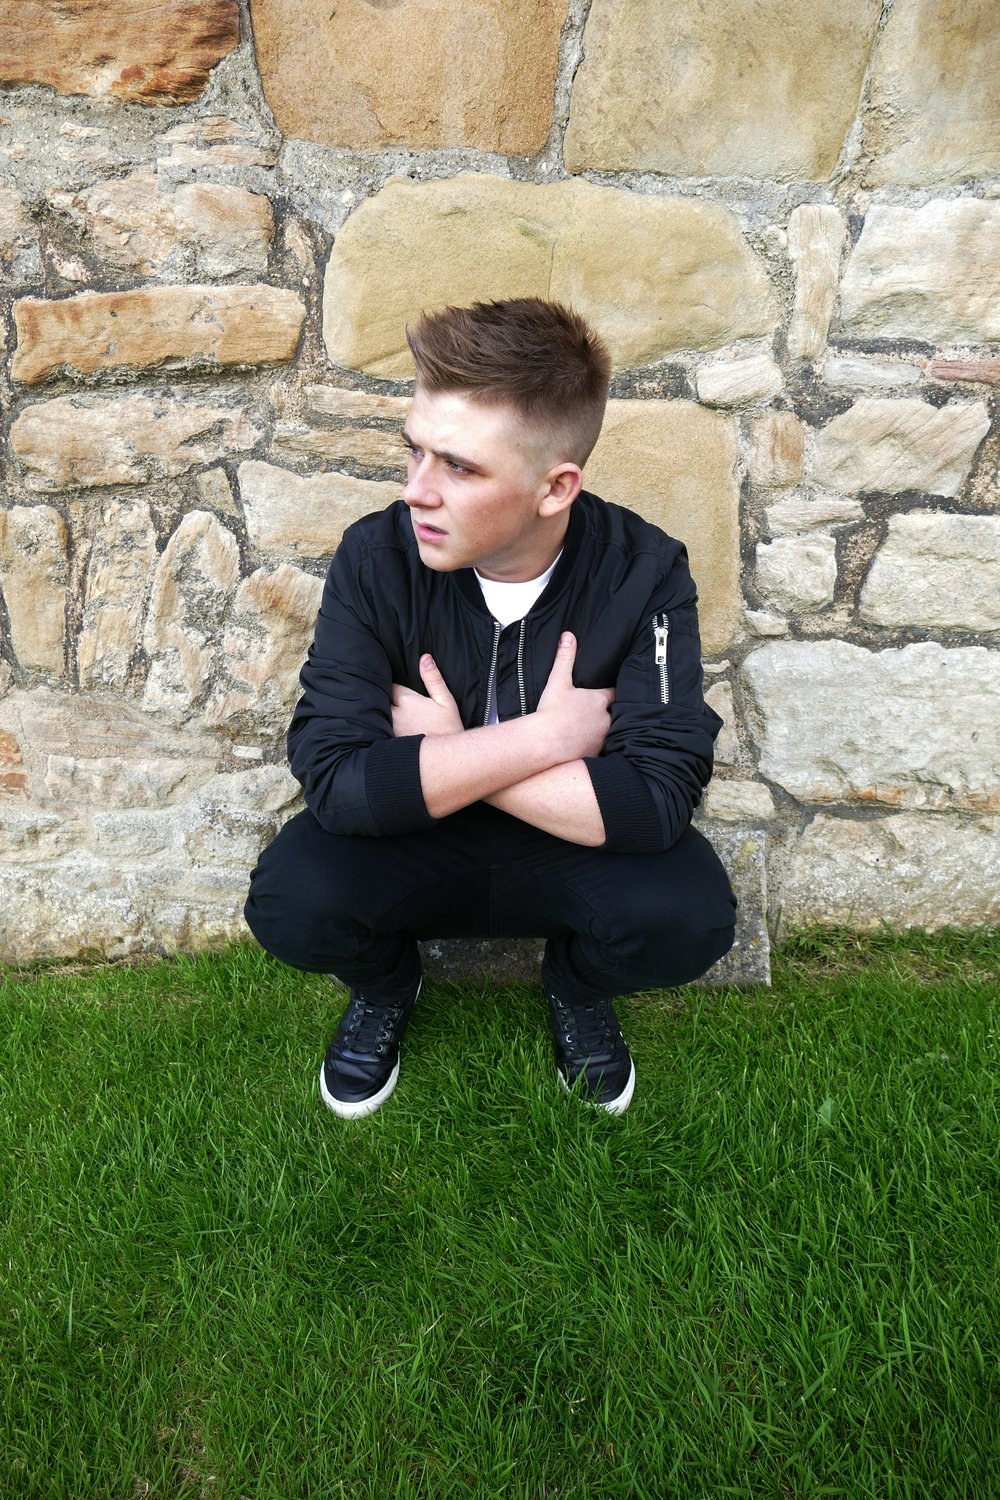 RT @MrsPandP: Introducing @nickymcdonald1 ~ Wedding Singer for your beautiful Big Day... https://t.co/folXWPfk28 https://t.co/6sdZsuVrMa